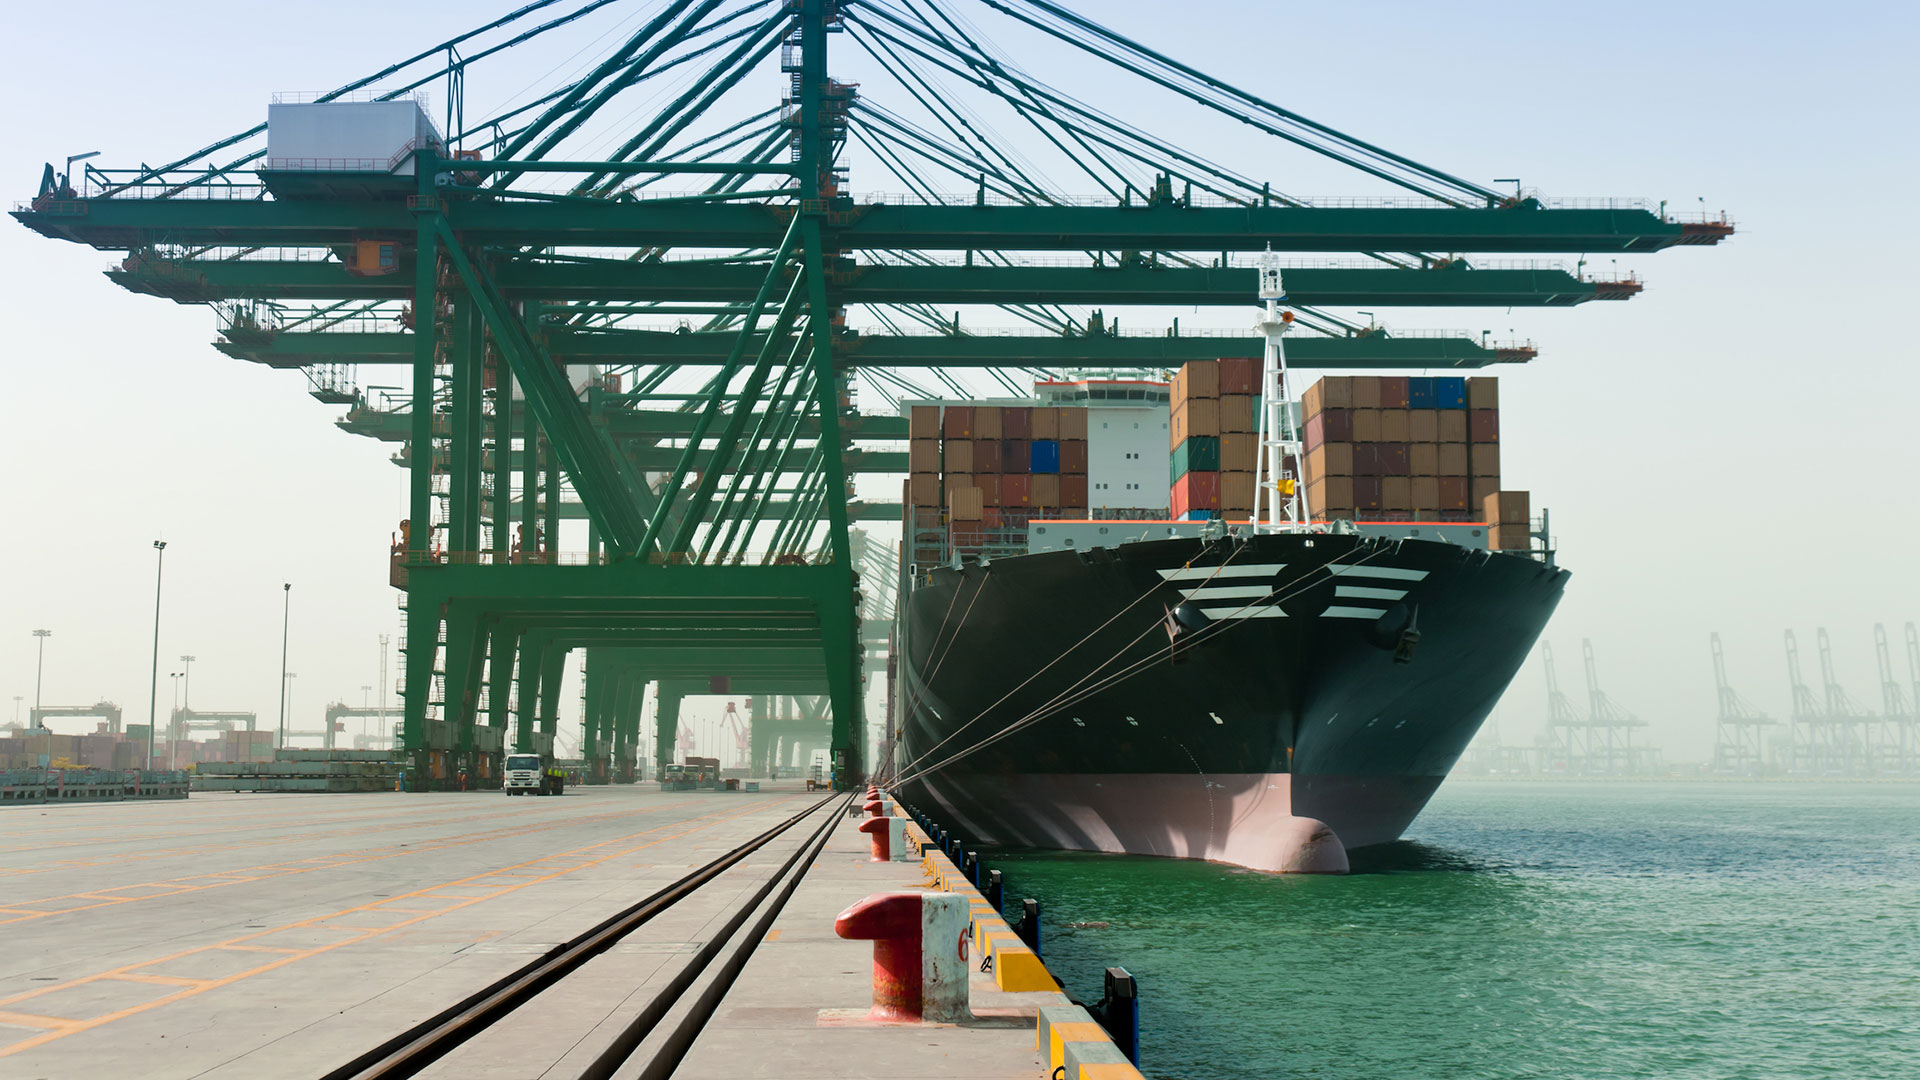 Greening the shipping industry